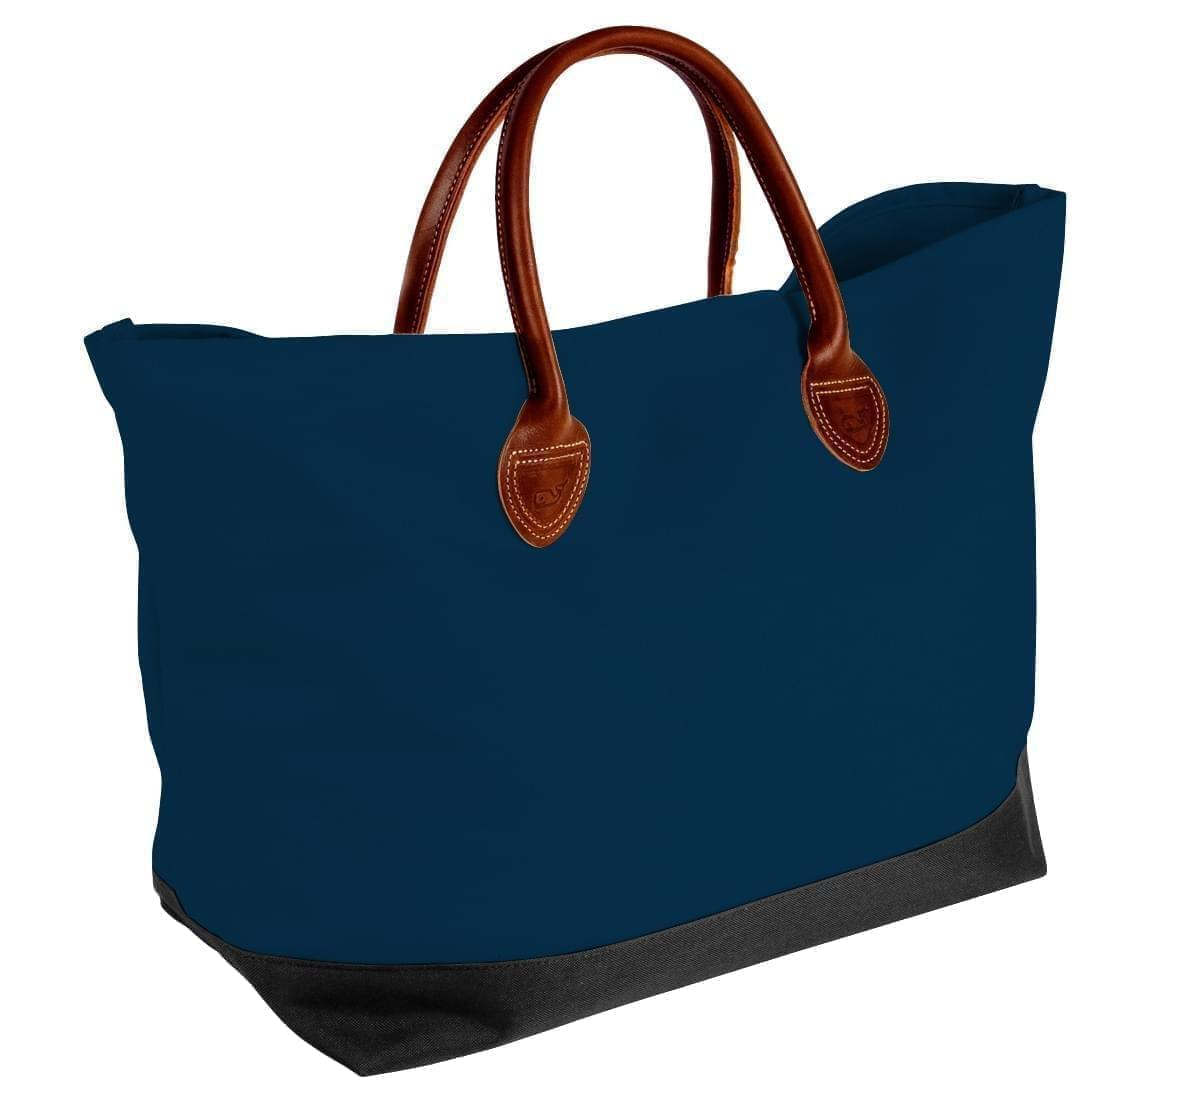 USA Made Canvas Leather Handle Totes, Navy-Black, 10899-CC9